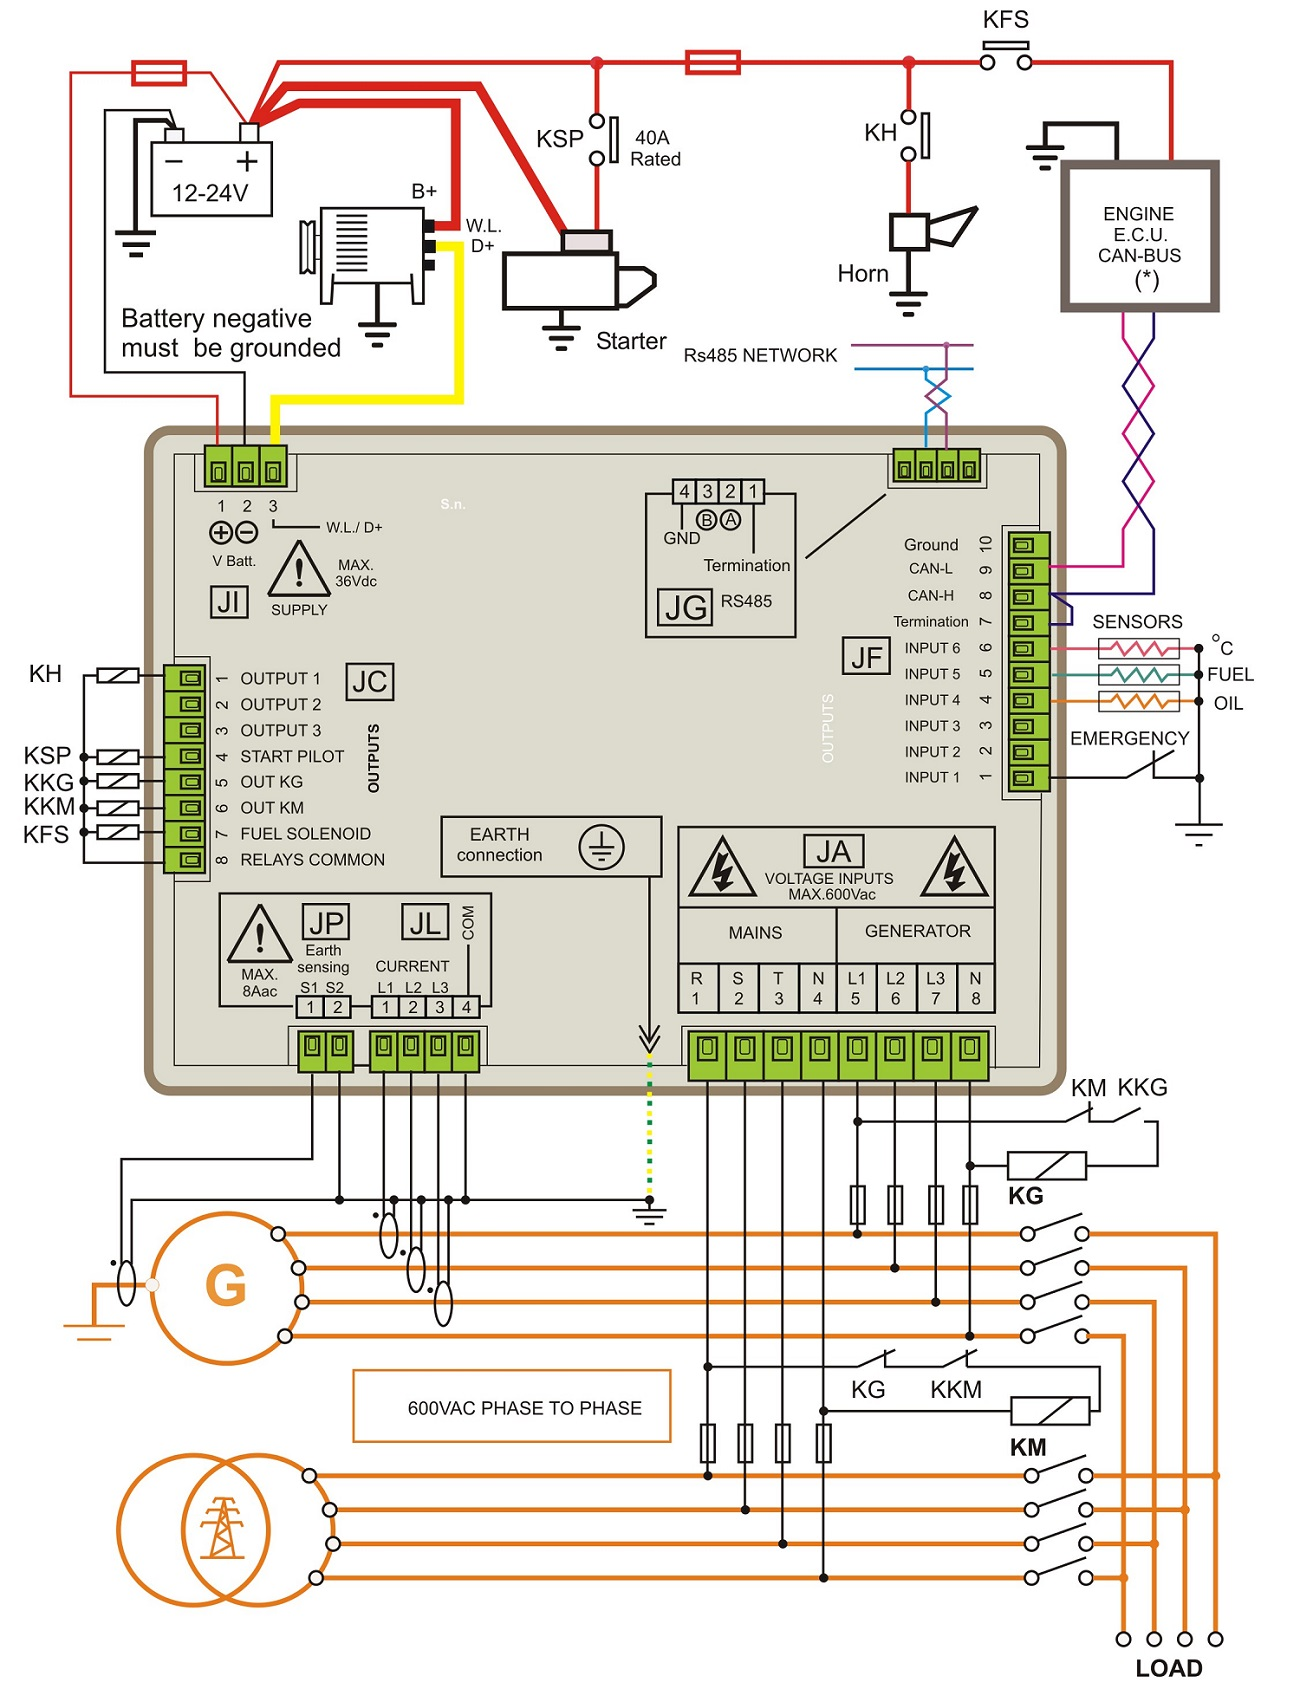 wiring diagram for a manual transfer switch the wiring diagram generator transfer switch wiring diagram kjpwg wiring diagram